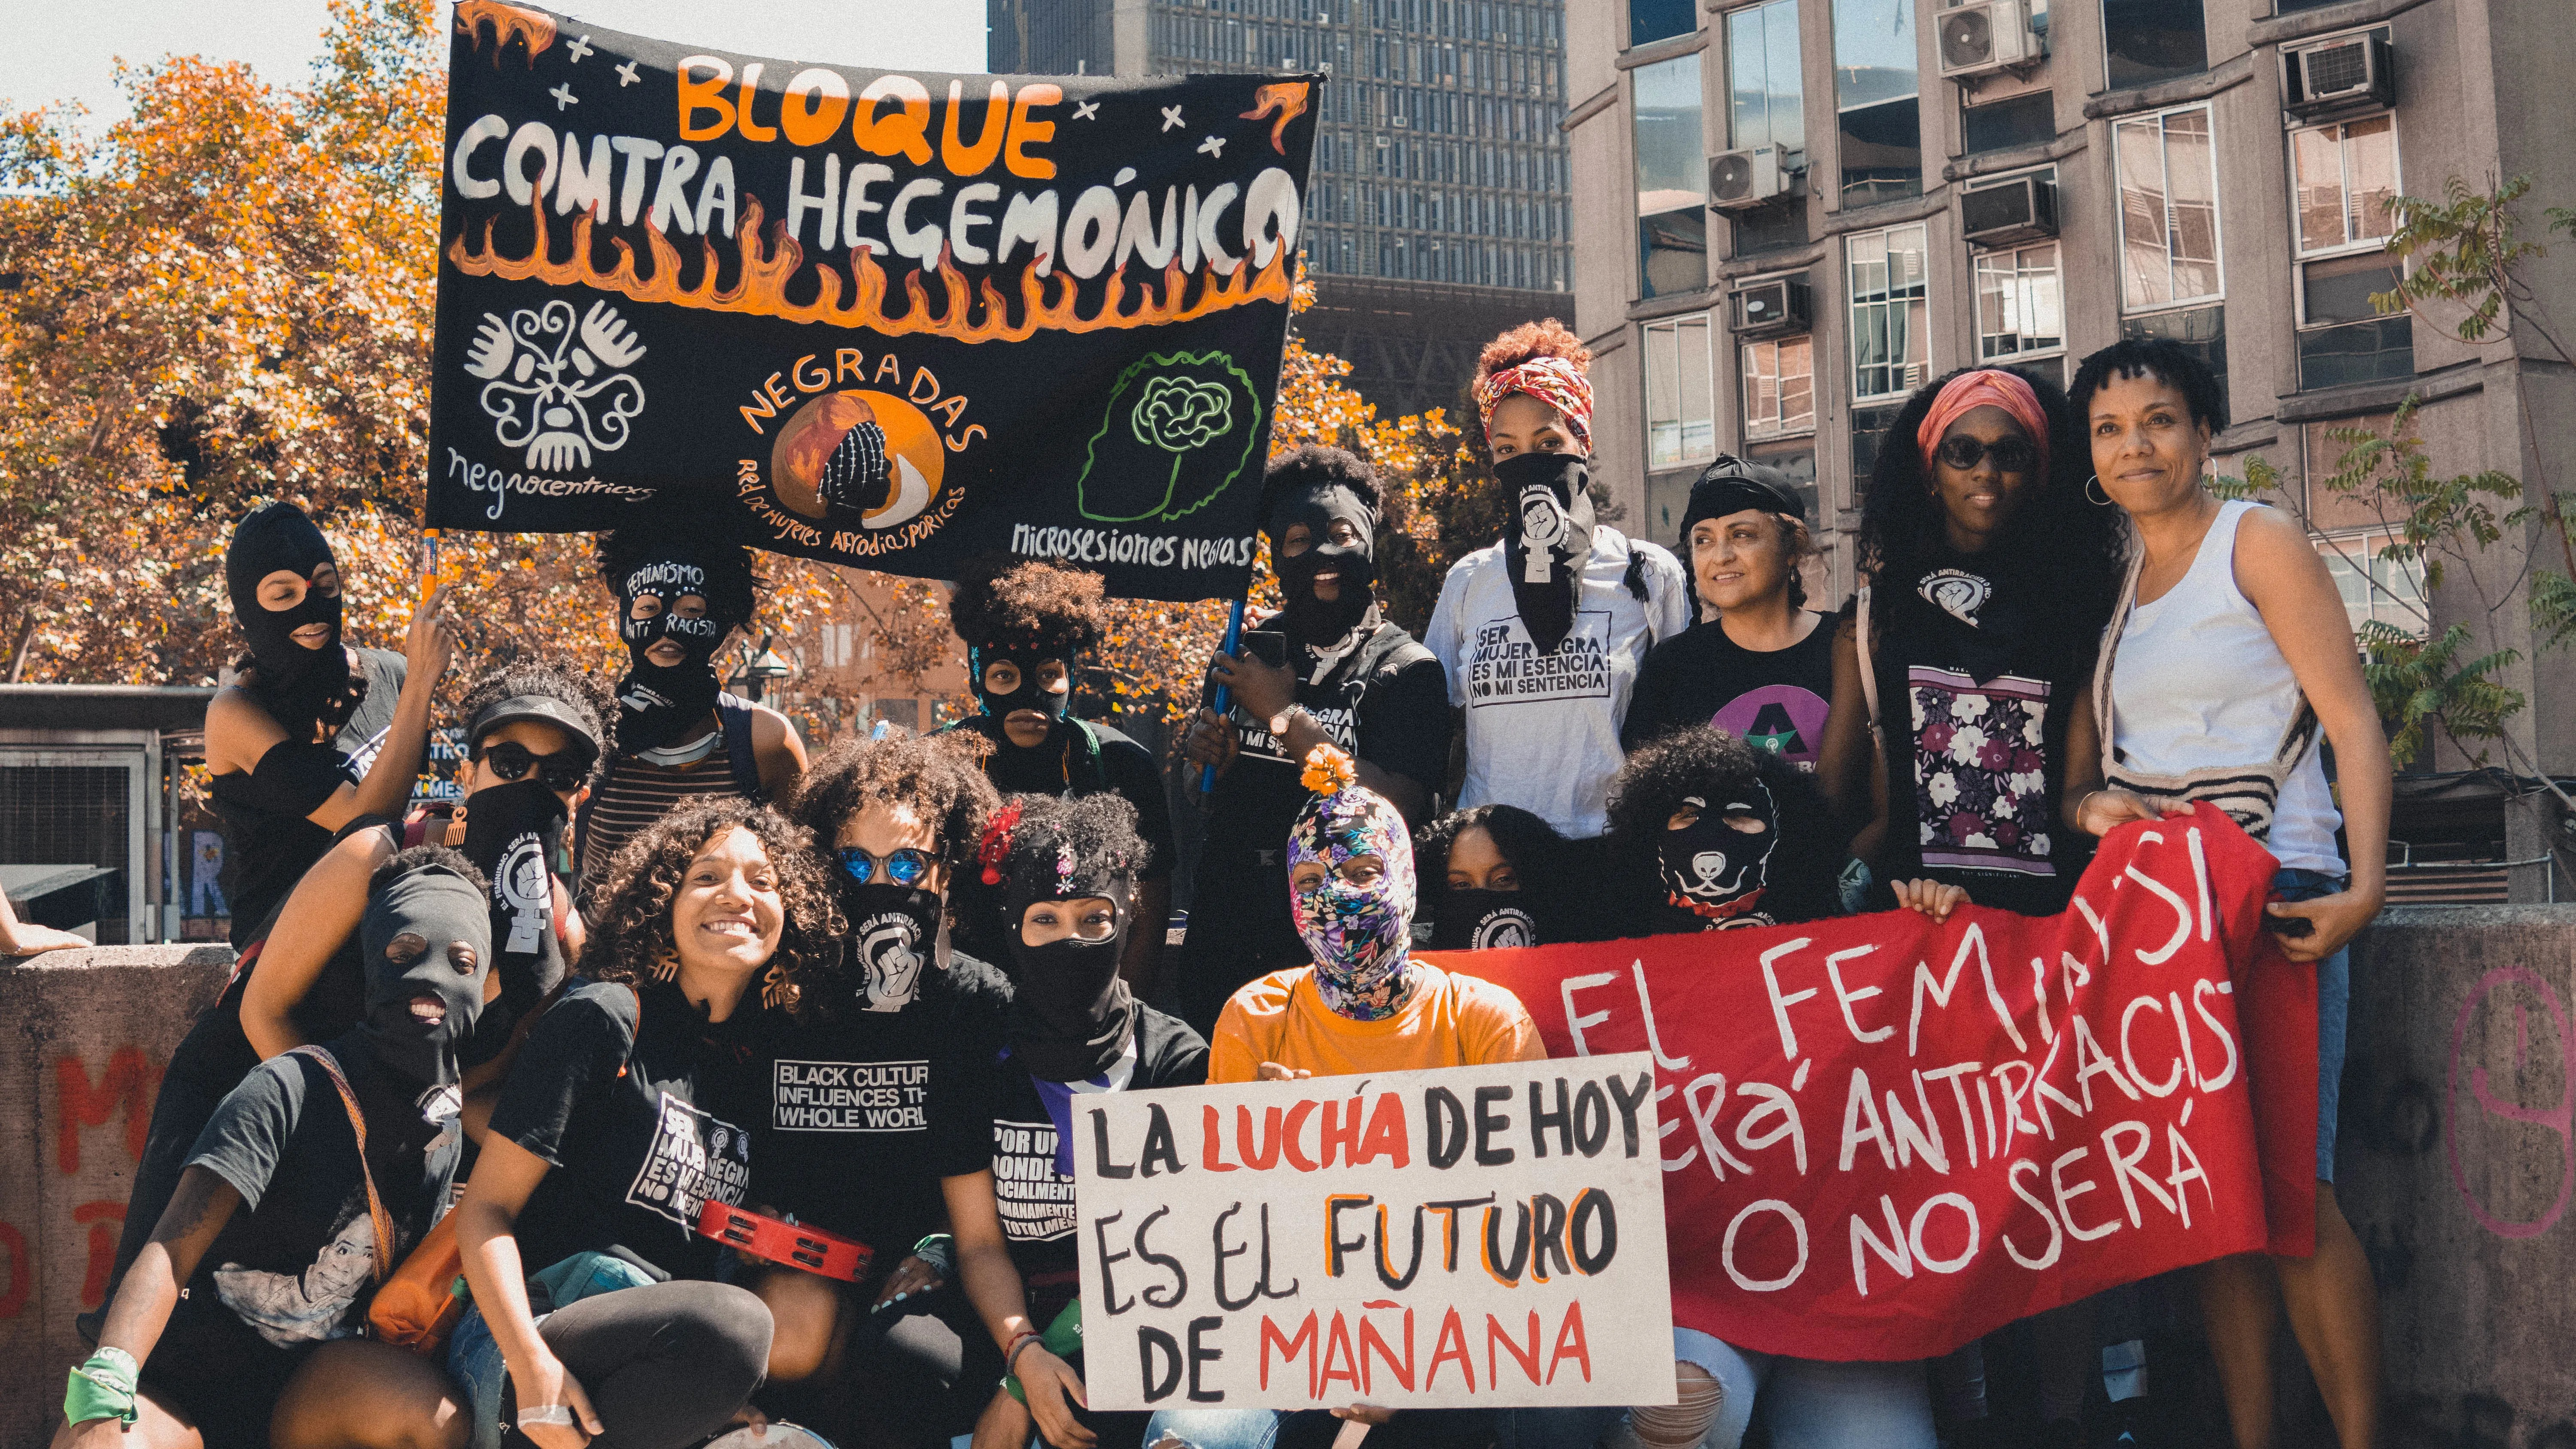 Black Chilean feminists holding signs, wearing masks, and protesting racism.